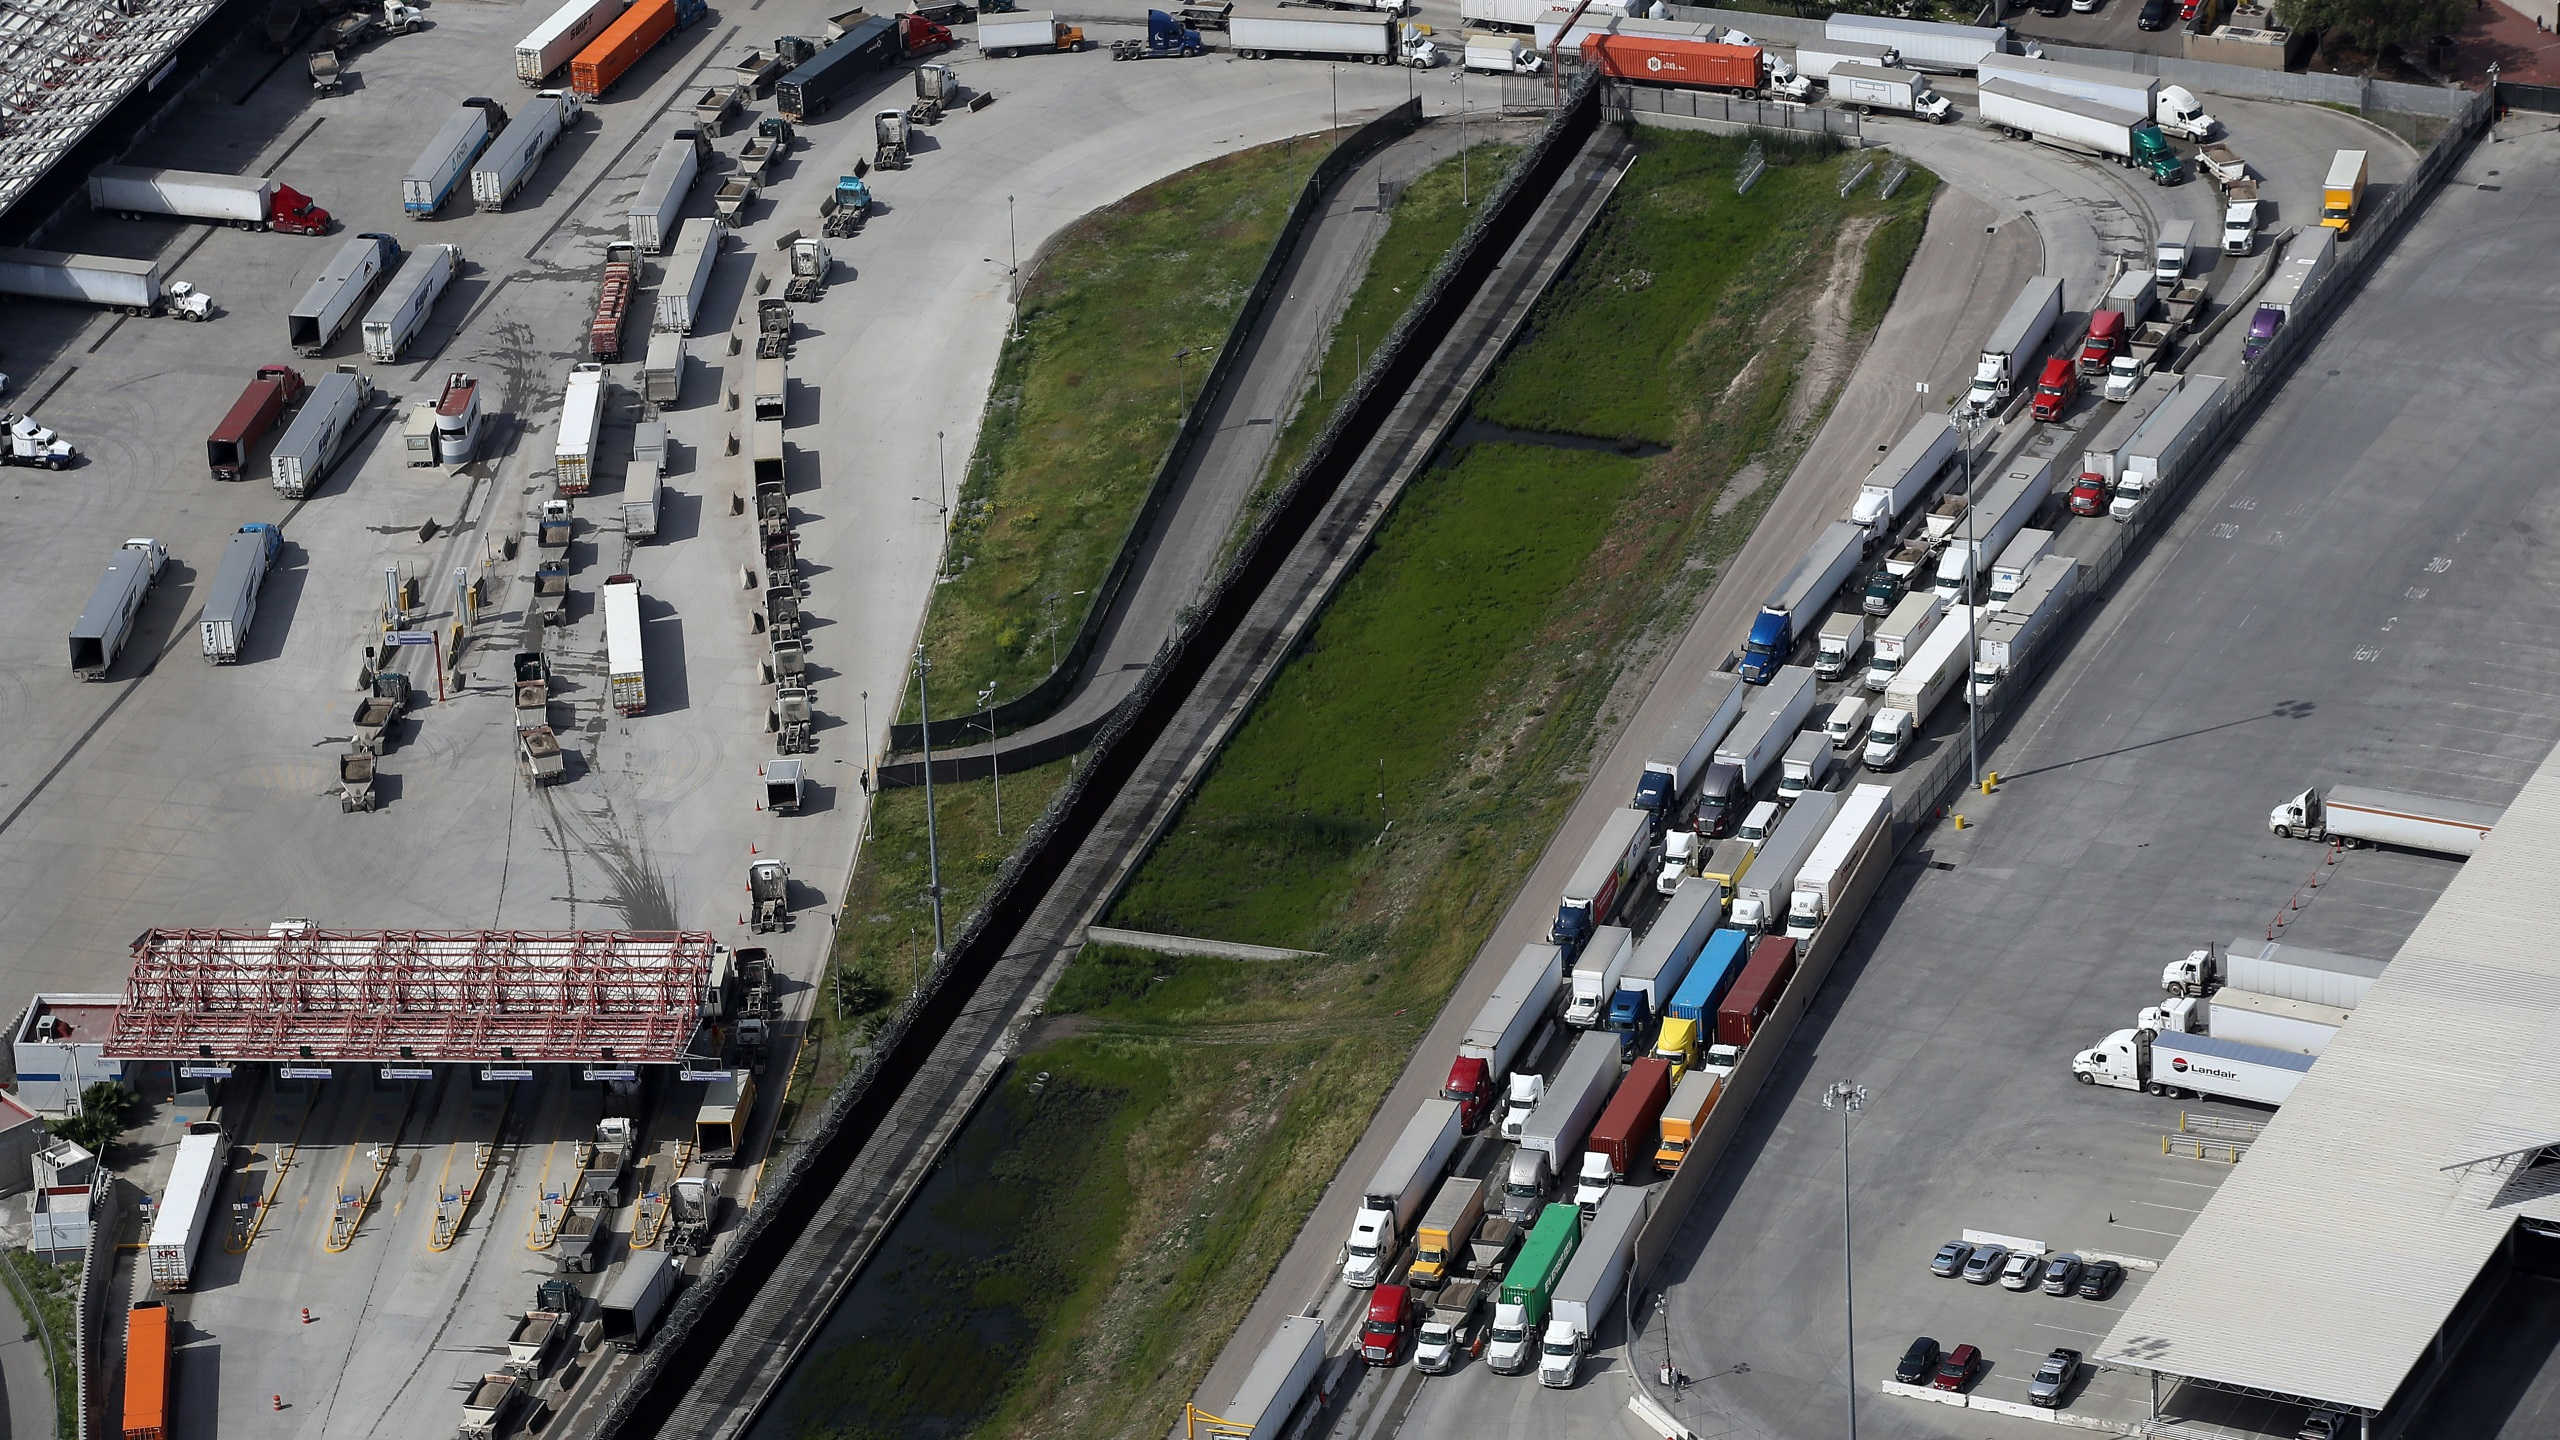 Commercial freight trucks line up to cross into the United States from Mexico through the U.S. Customs and Border Protection - Otay Mesa Port of Entry on March 20, 2020 in San Diego. (Sean M. Haffey/Getty Images)